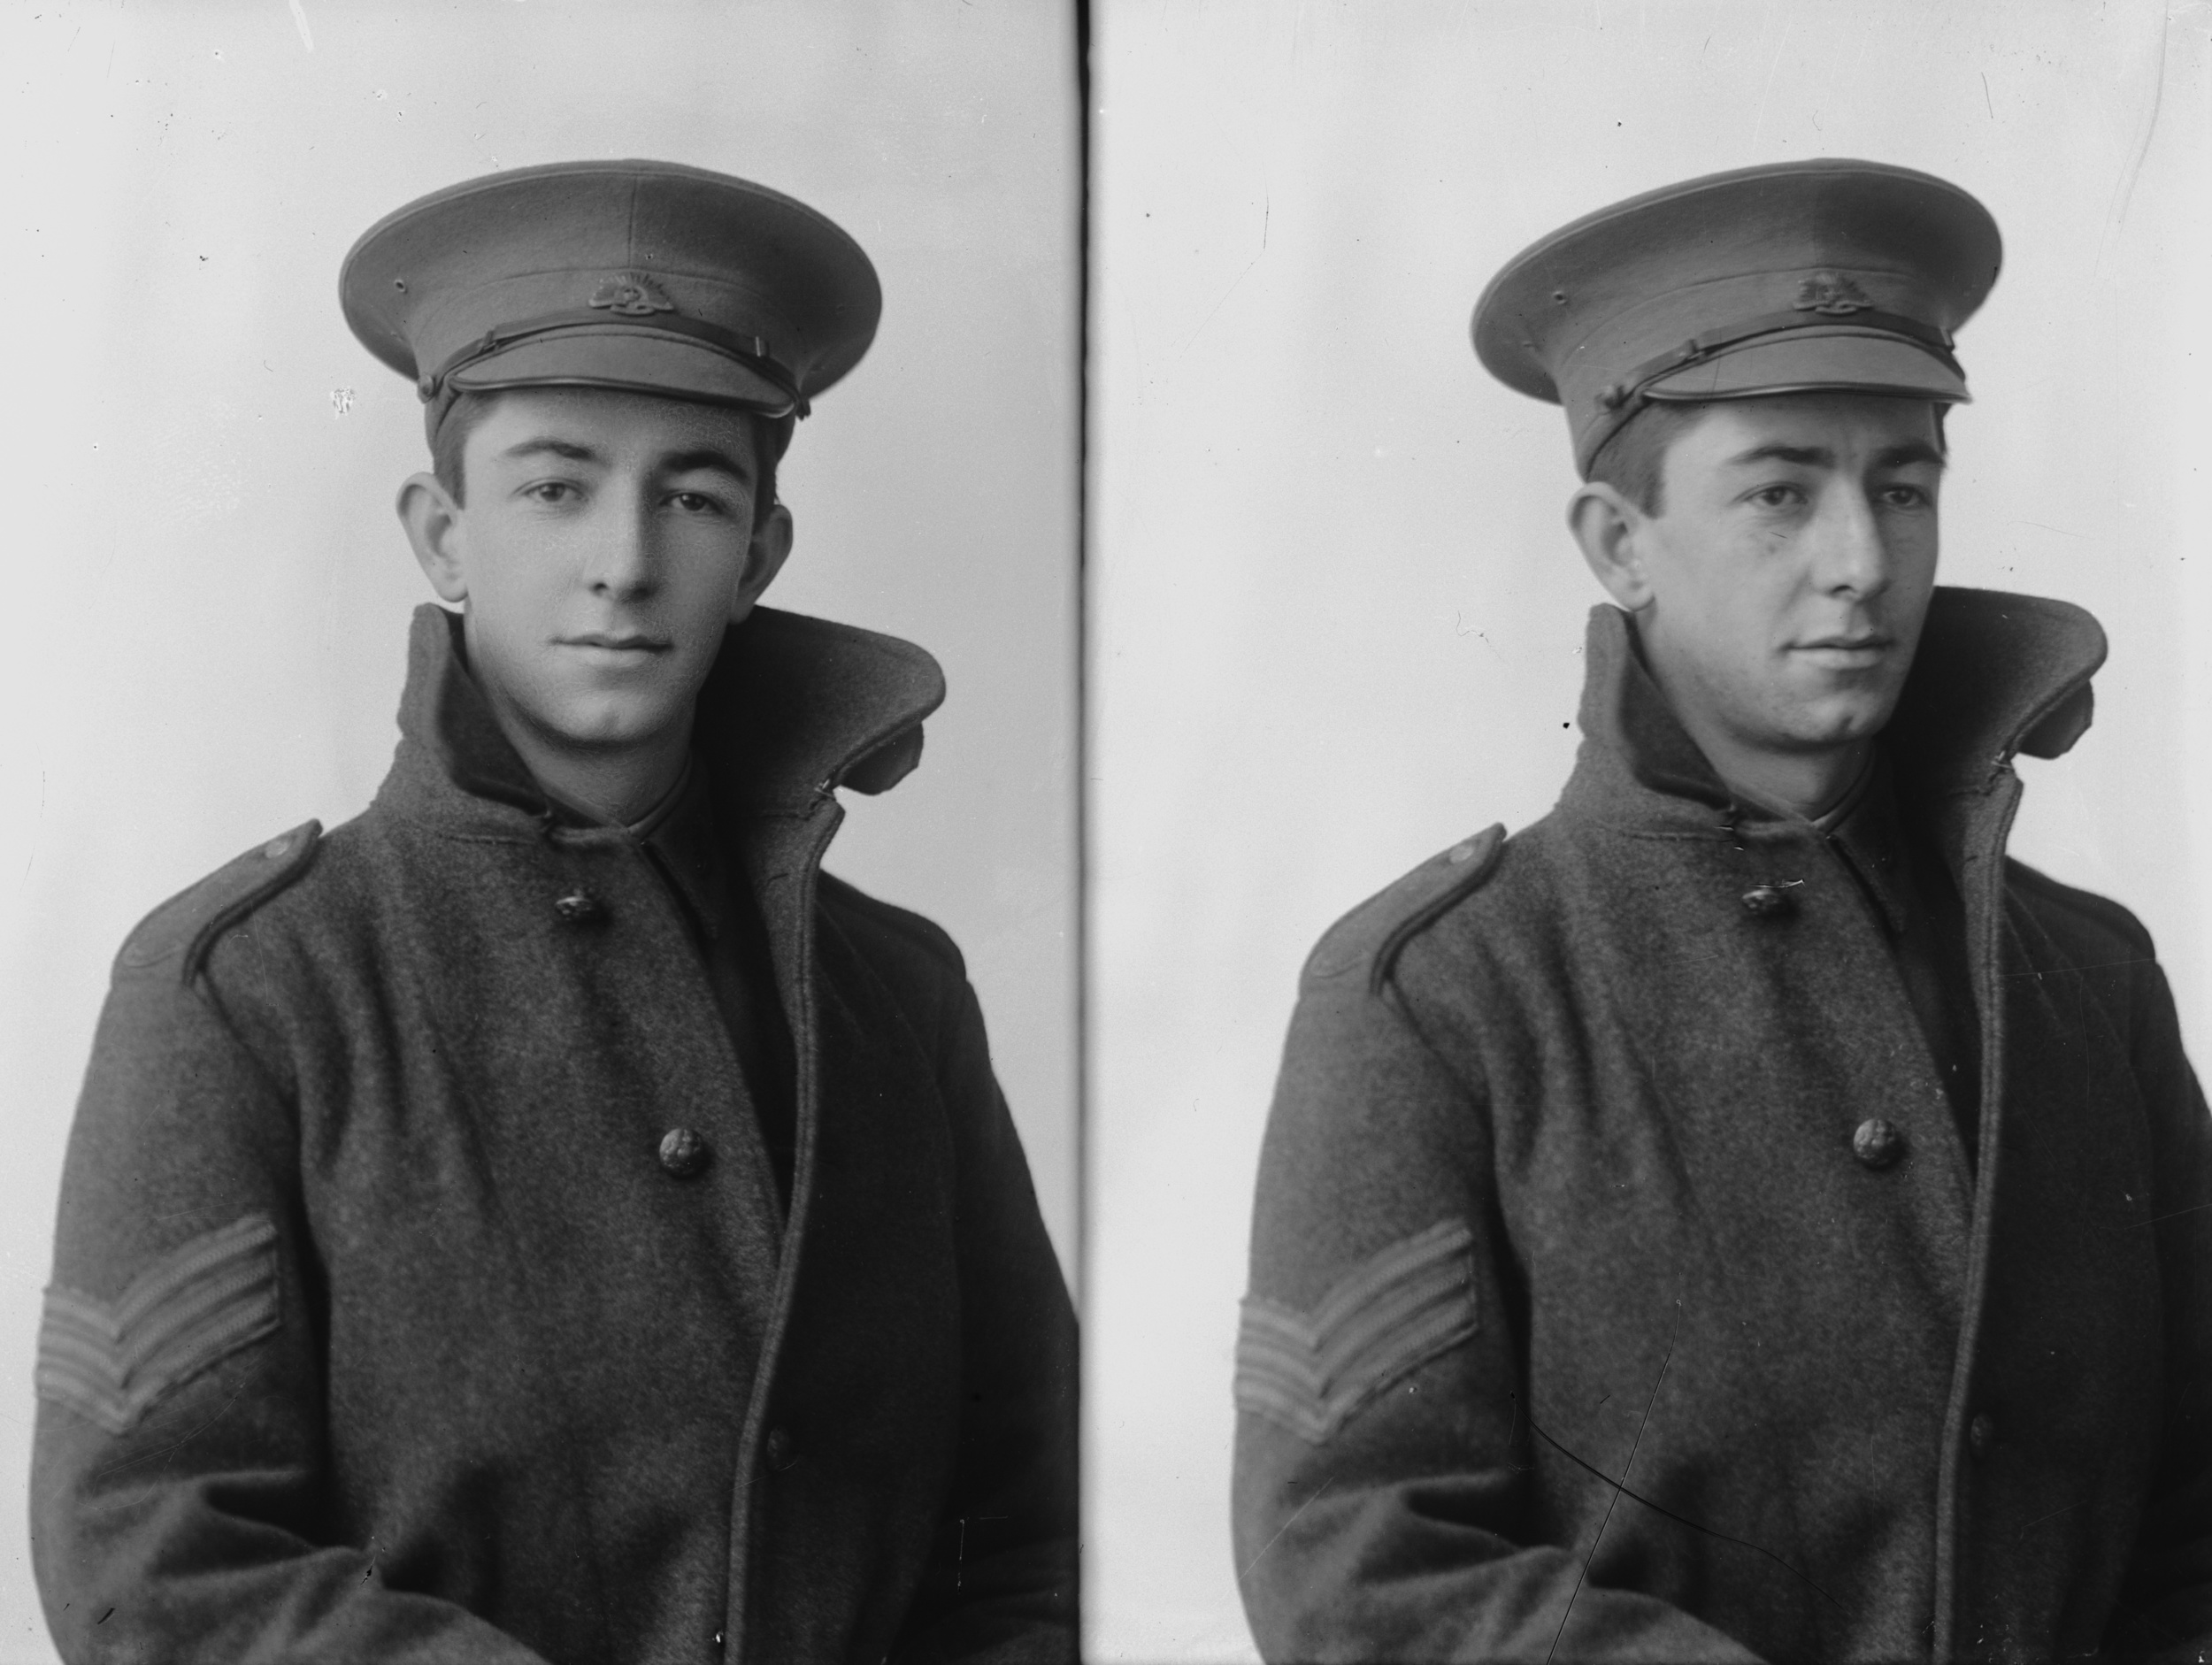 Photographed at the Dease Studio, 117 Barrack Street Perth WA Image courtesy of the State Library of Western Australia: 108178PD